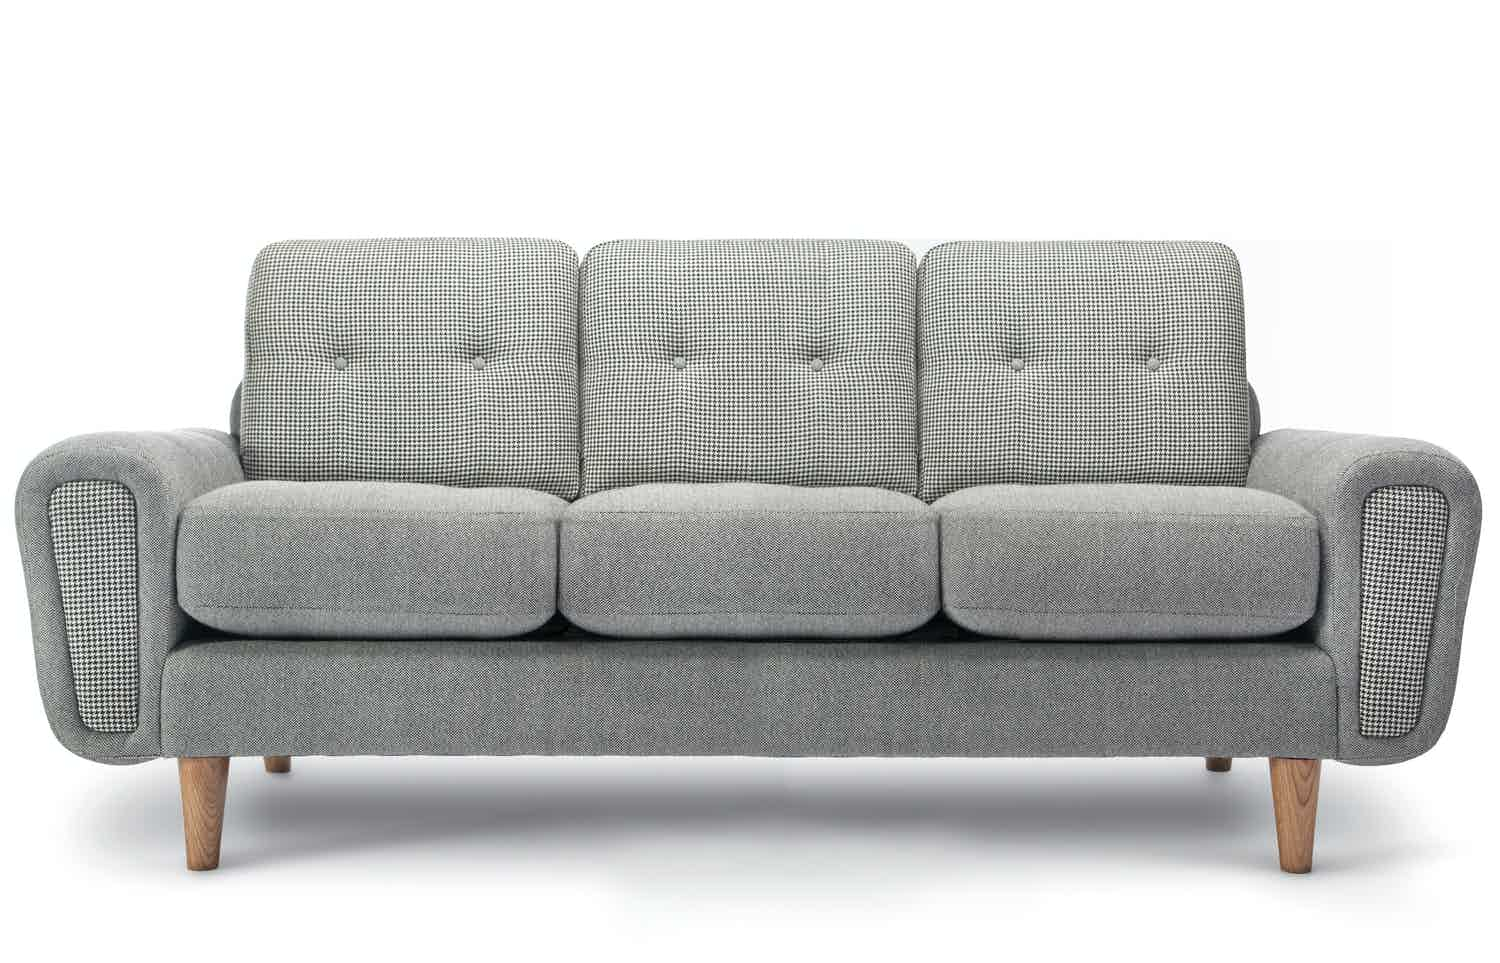 Deadgood-harvey-sofa-three-seat-haute-living